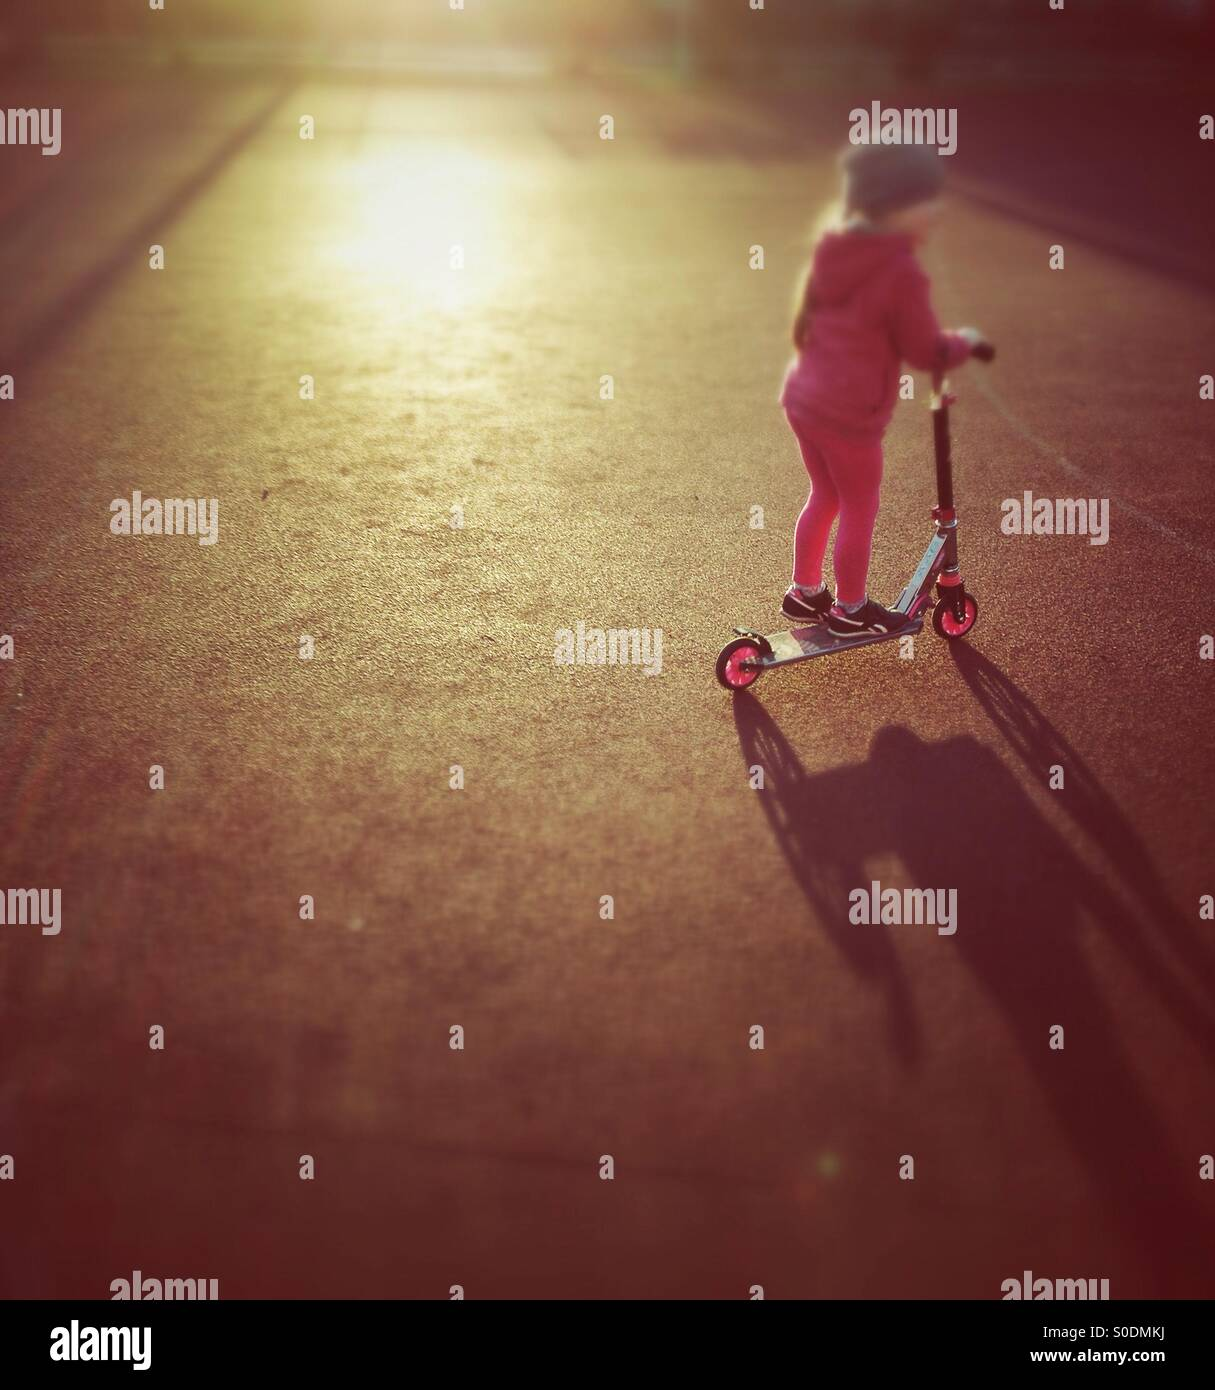 Child riding scooter - Stock Image